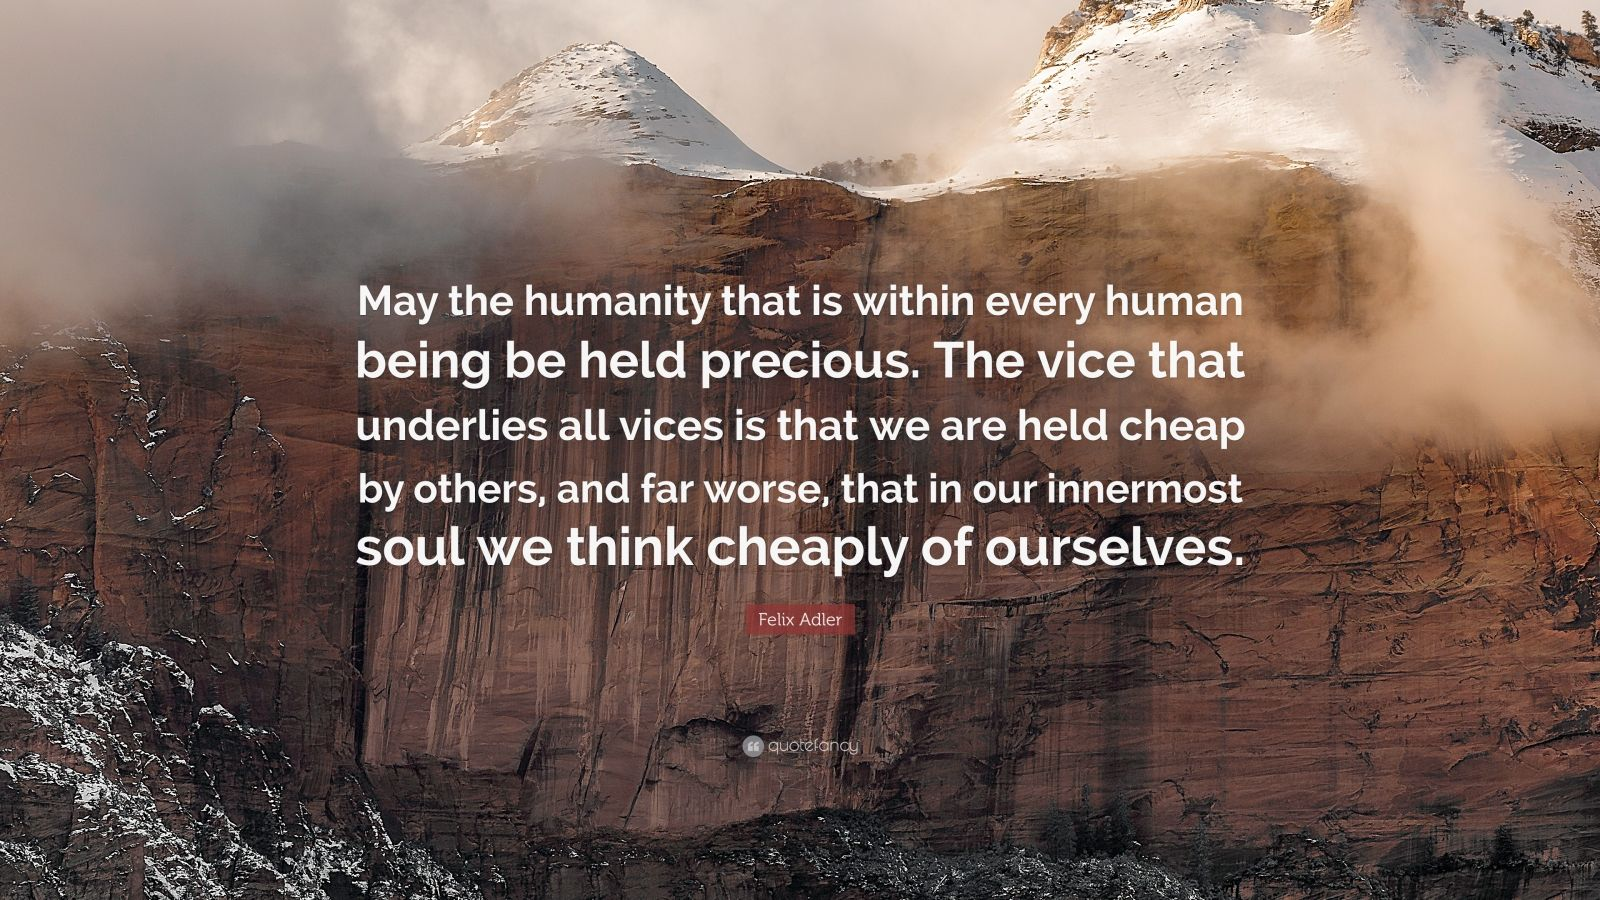 """Felix Adler Quote: """"May the humanity that is within every human being be held precious. The vice that underlies all vices is that we are held cheap by others, and far worse, that in our innermost soul we think cheaply of ourselves."""""""